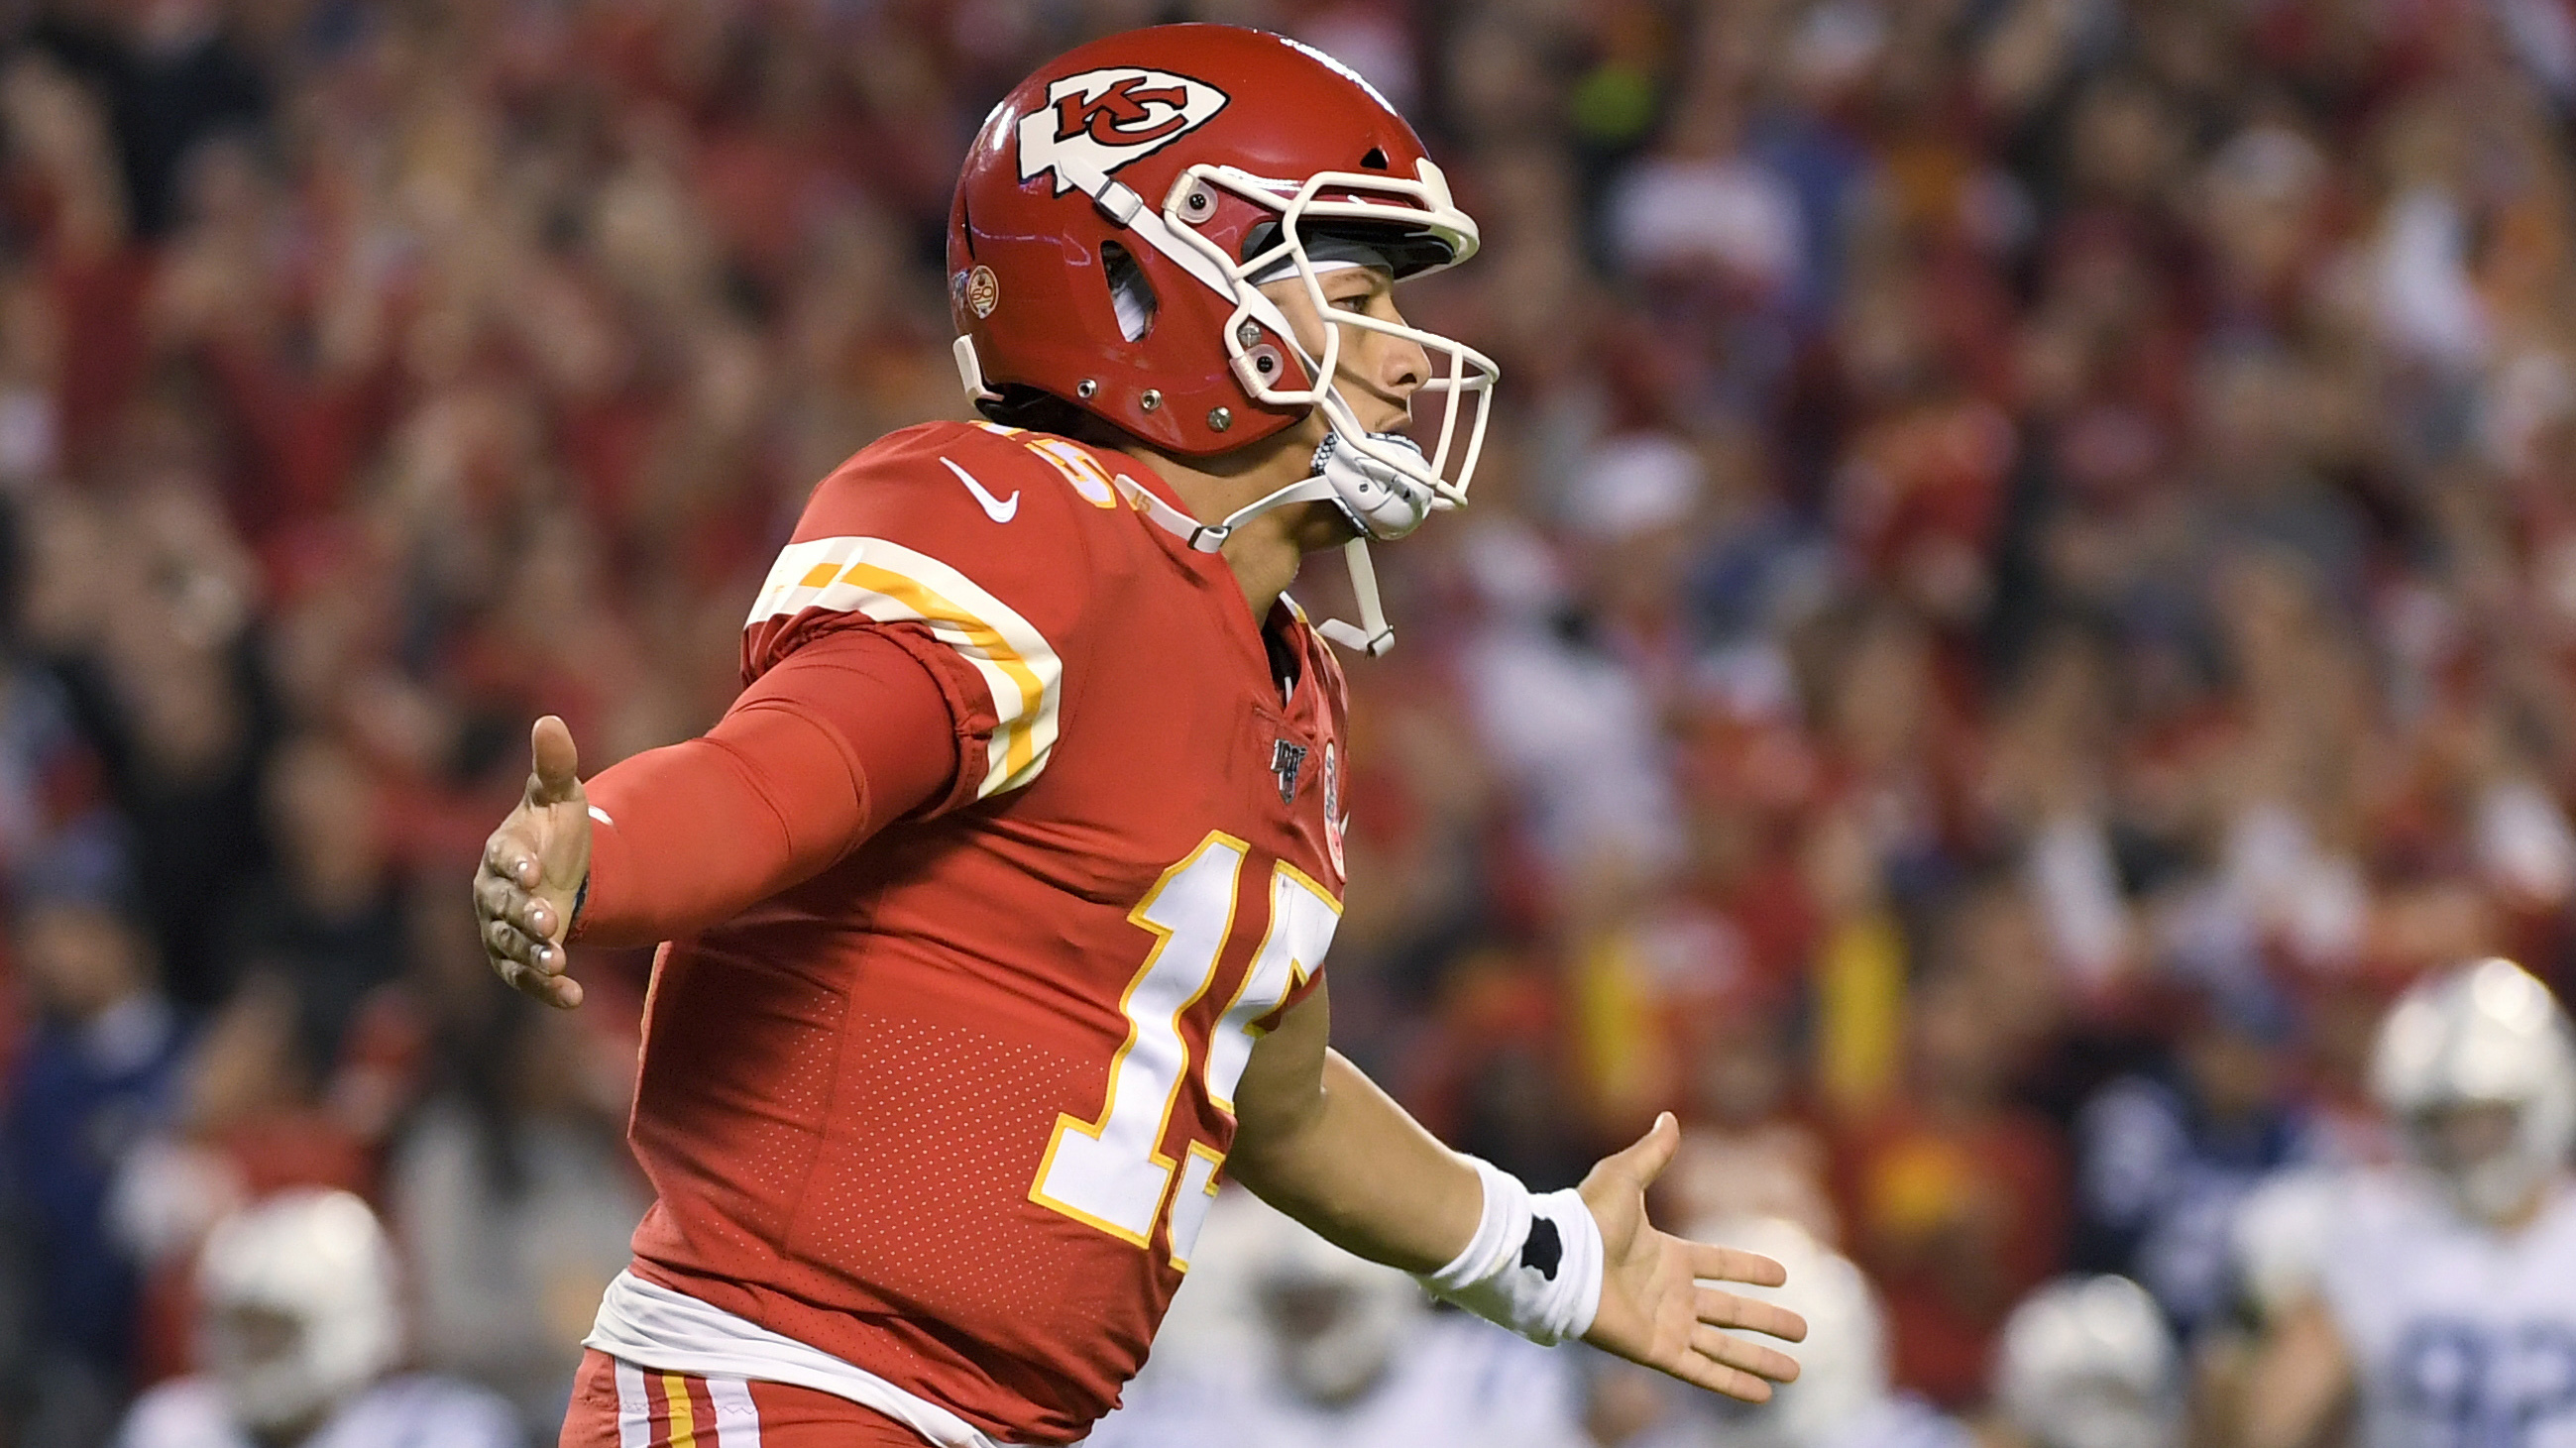 Colts use man-to-man defense to upset Patrick Mahomes, Chiefs 19-13